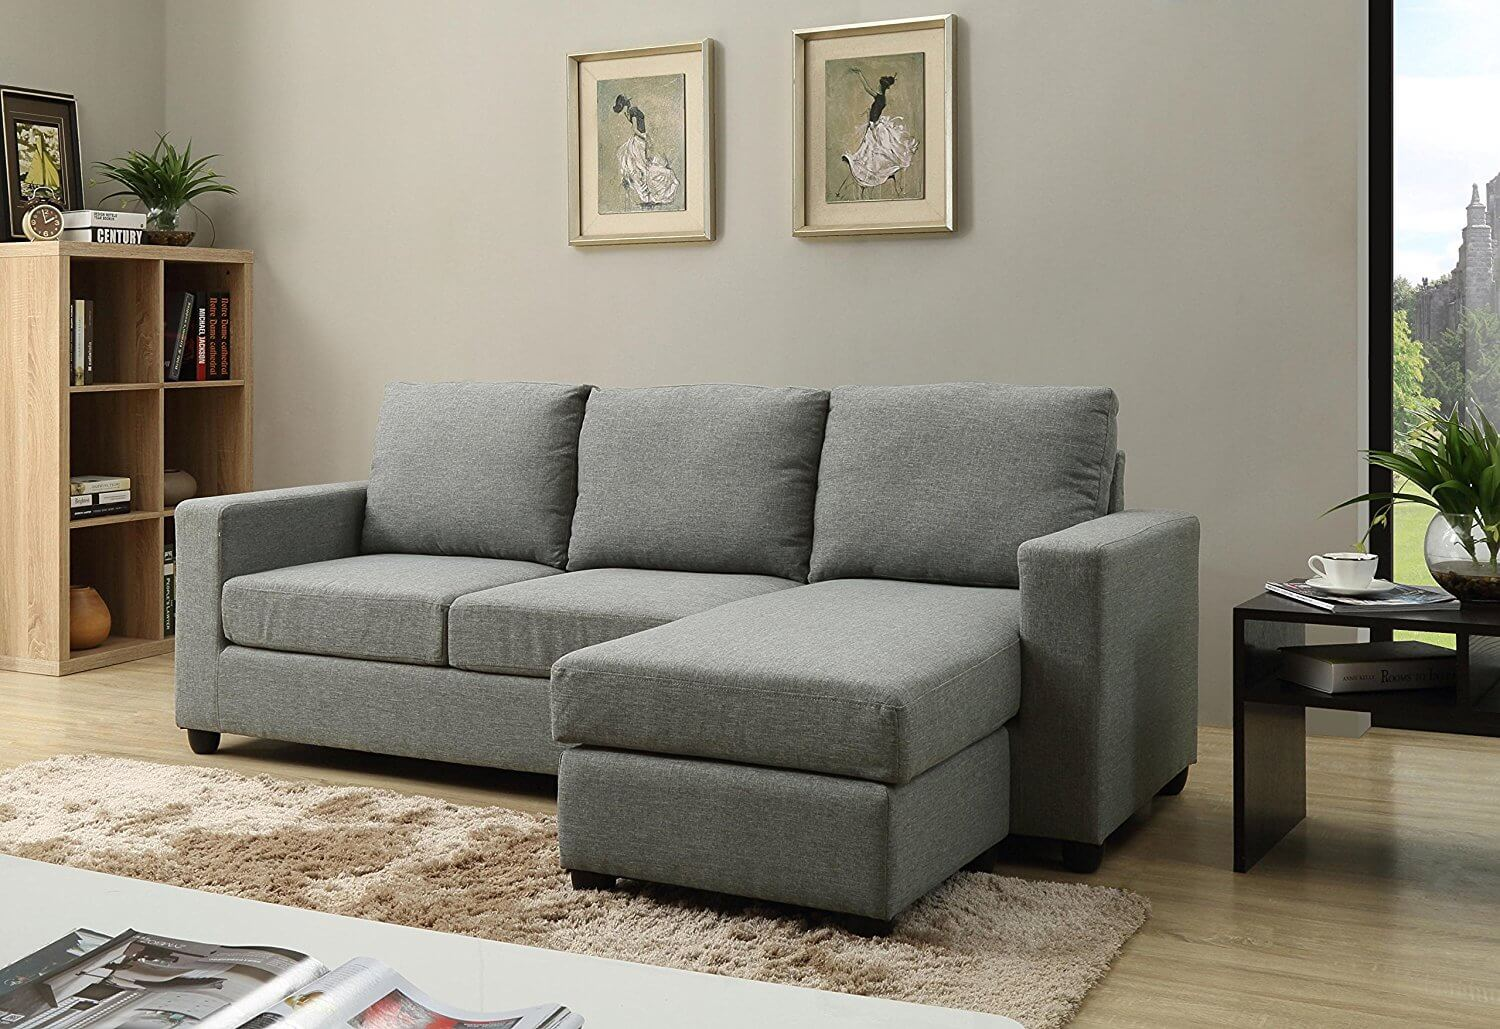 sofa design designed for small spaces TPFWLXG